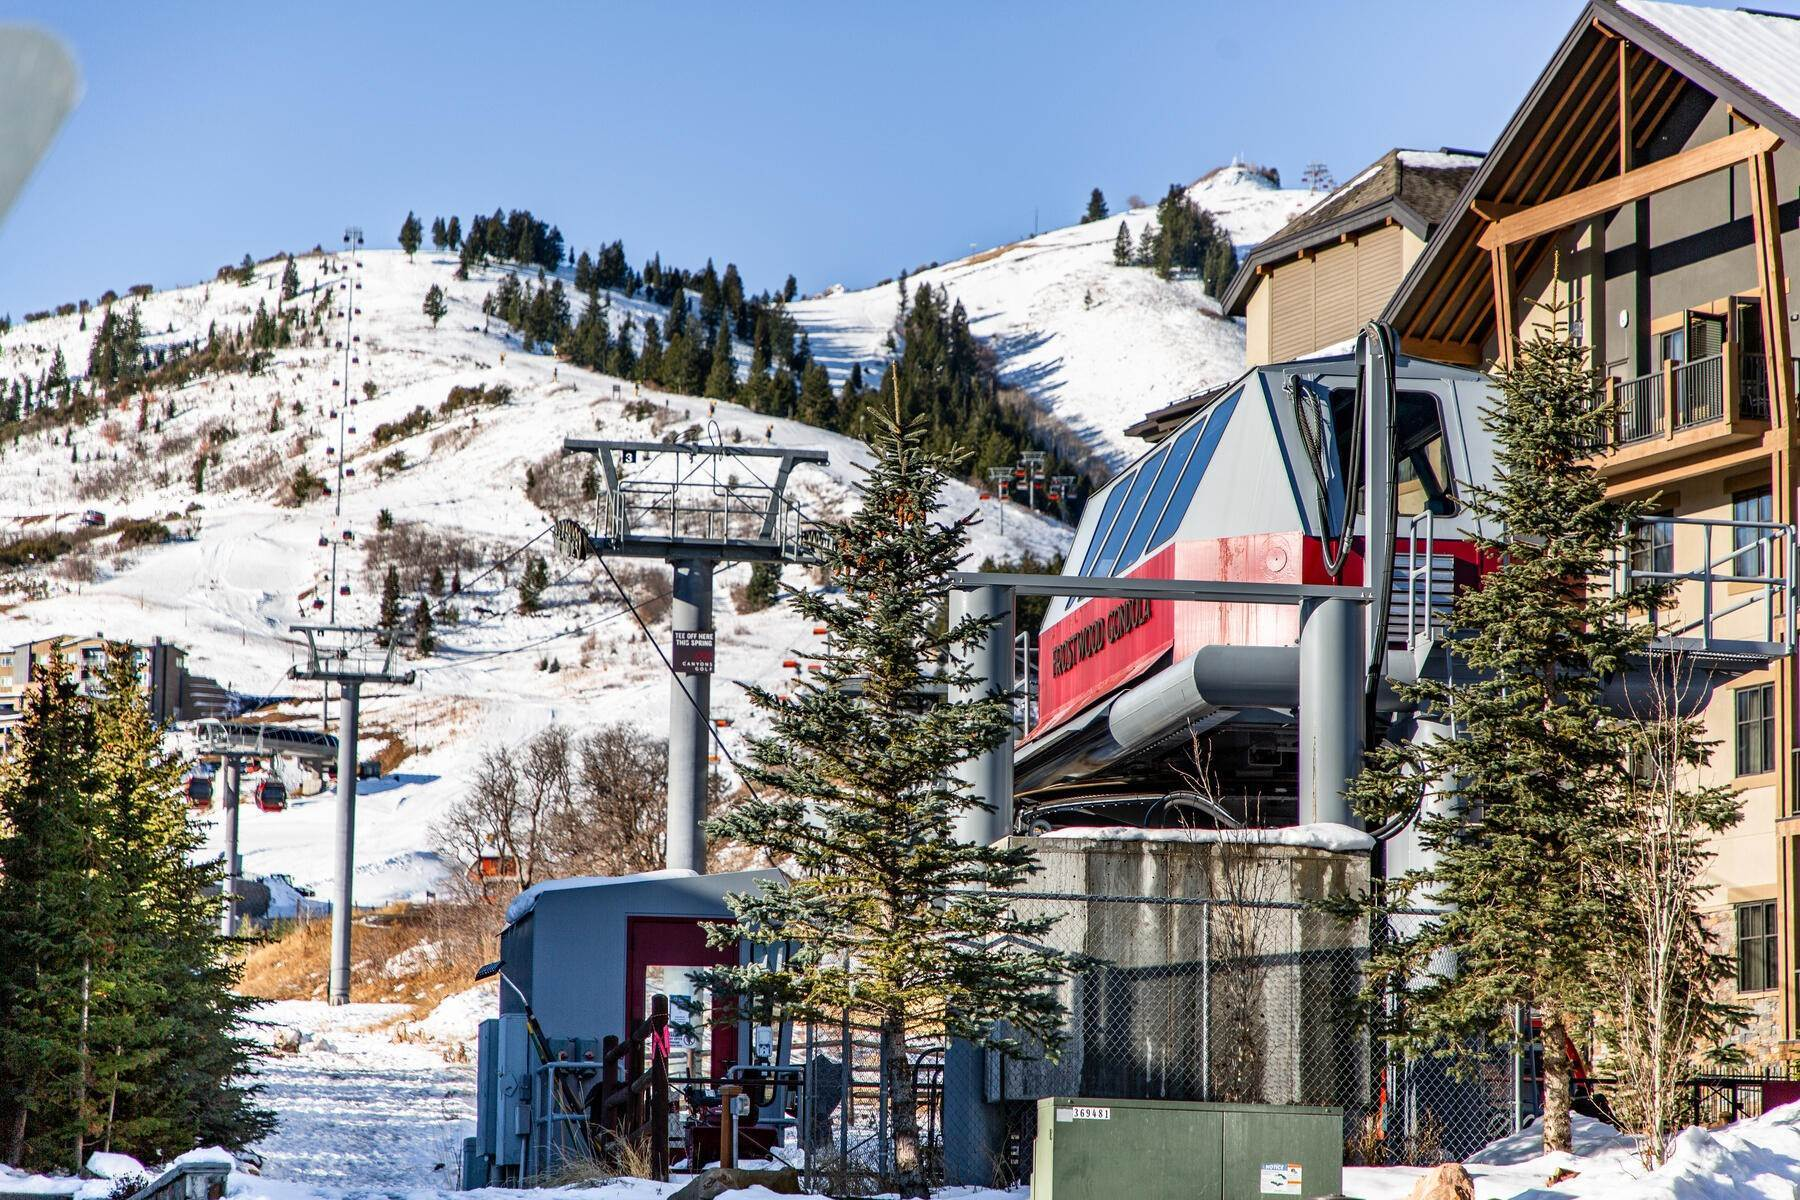 17. Condominiums for Sale at Introducing Park City's Newest Boutique Ski Hotel, The Ascent Park City! 4080 N Cooper Lane #339 Park City, Utah 84098 United States